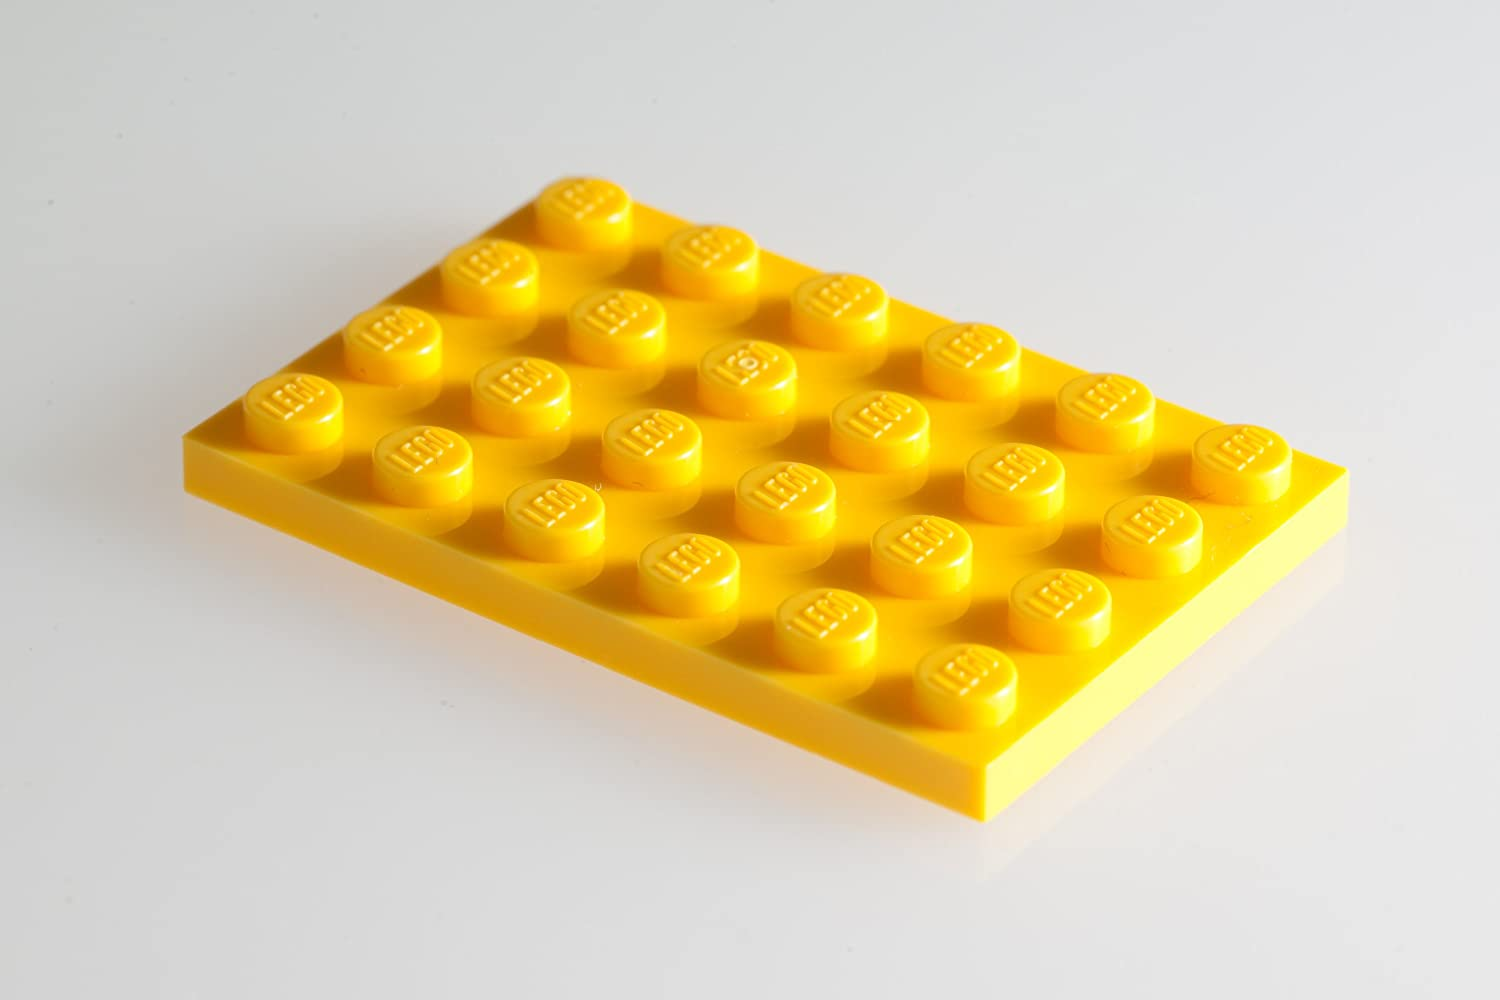 100x Lego Bright-Yellow (Yellow) 4x6 Plates Super Pack